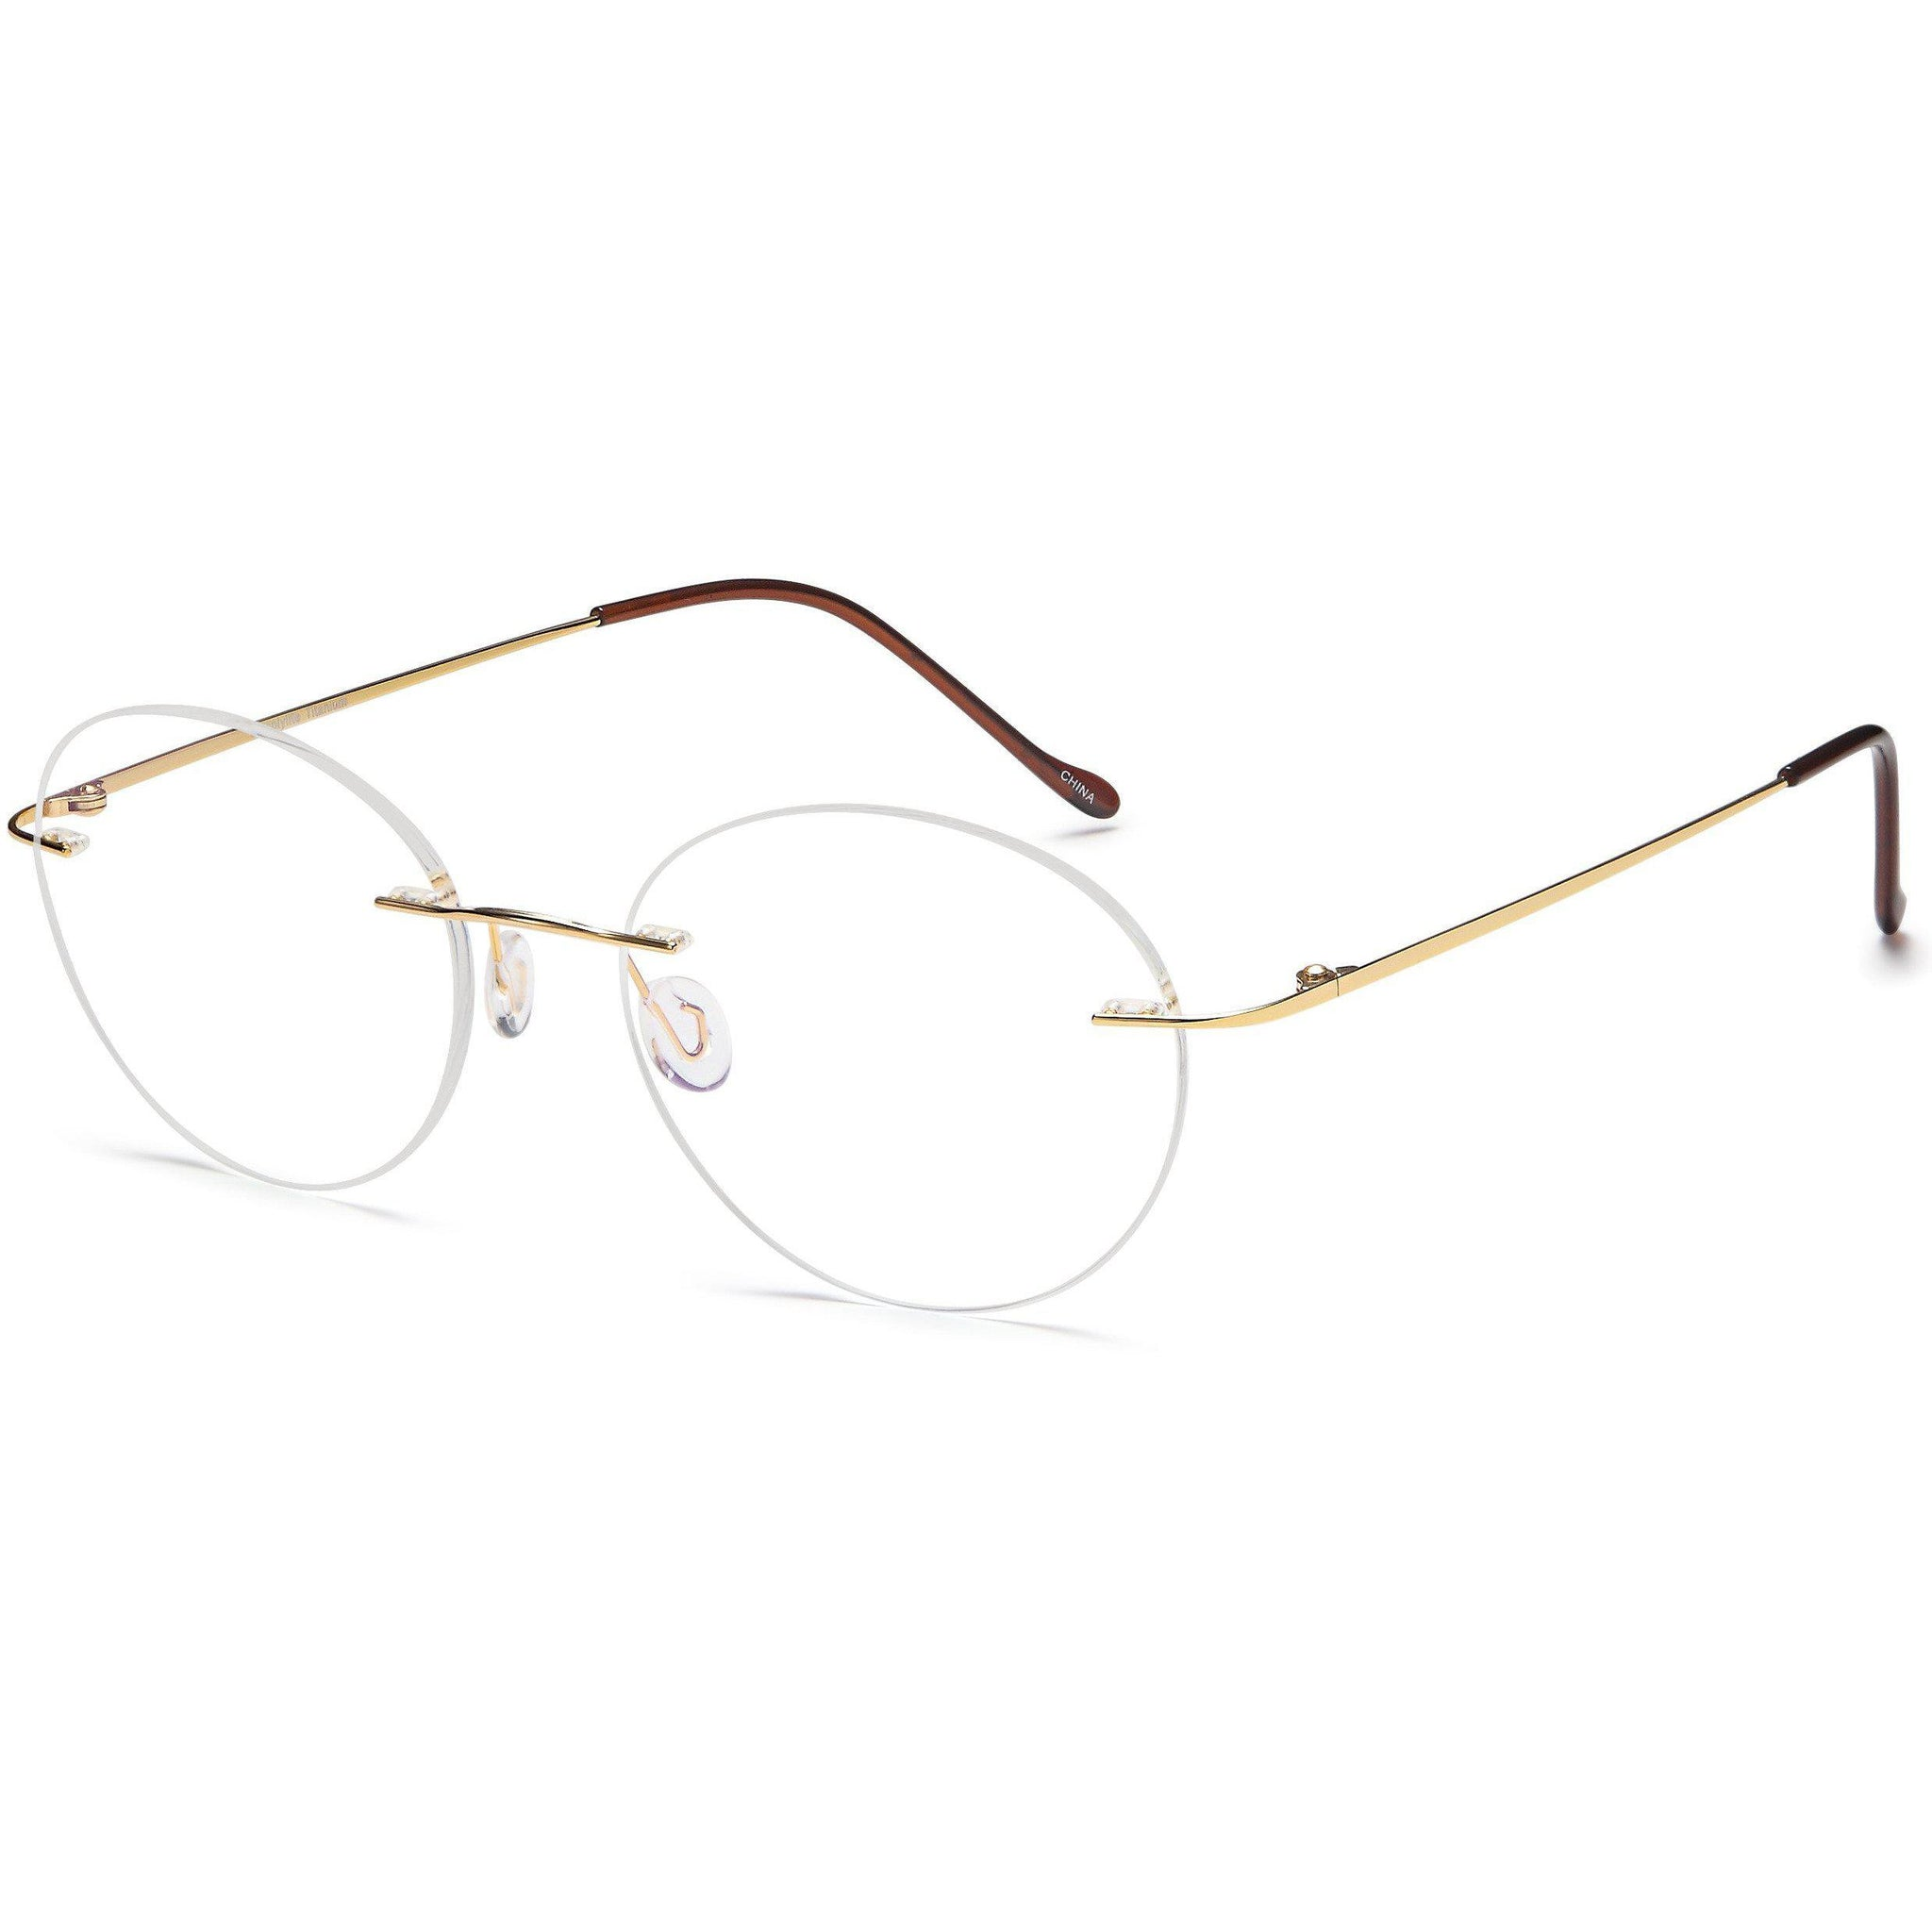 Feather Prescription Glasses SL 702 Eyeglasses Frames